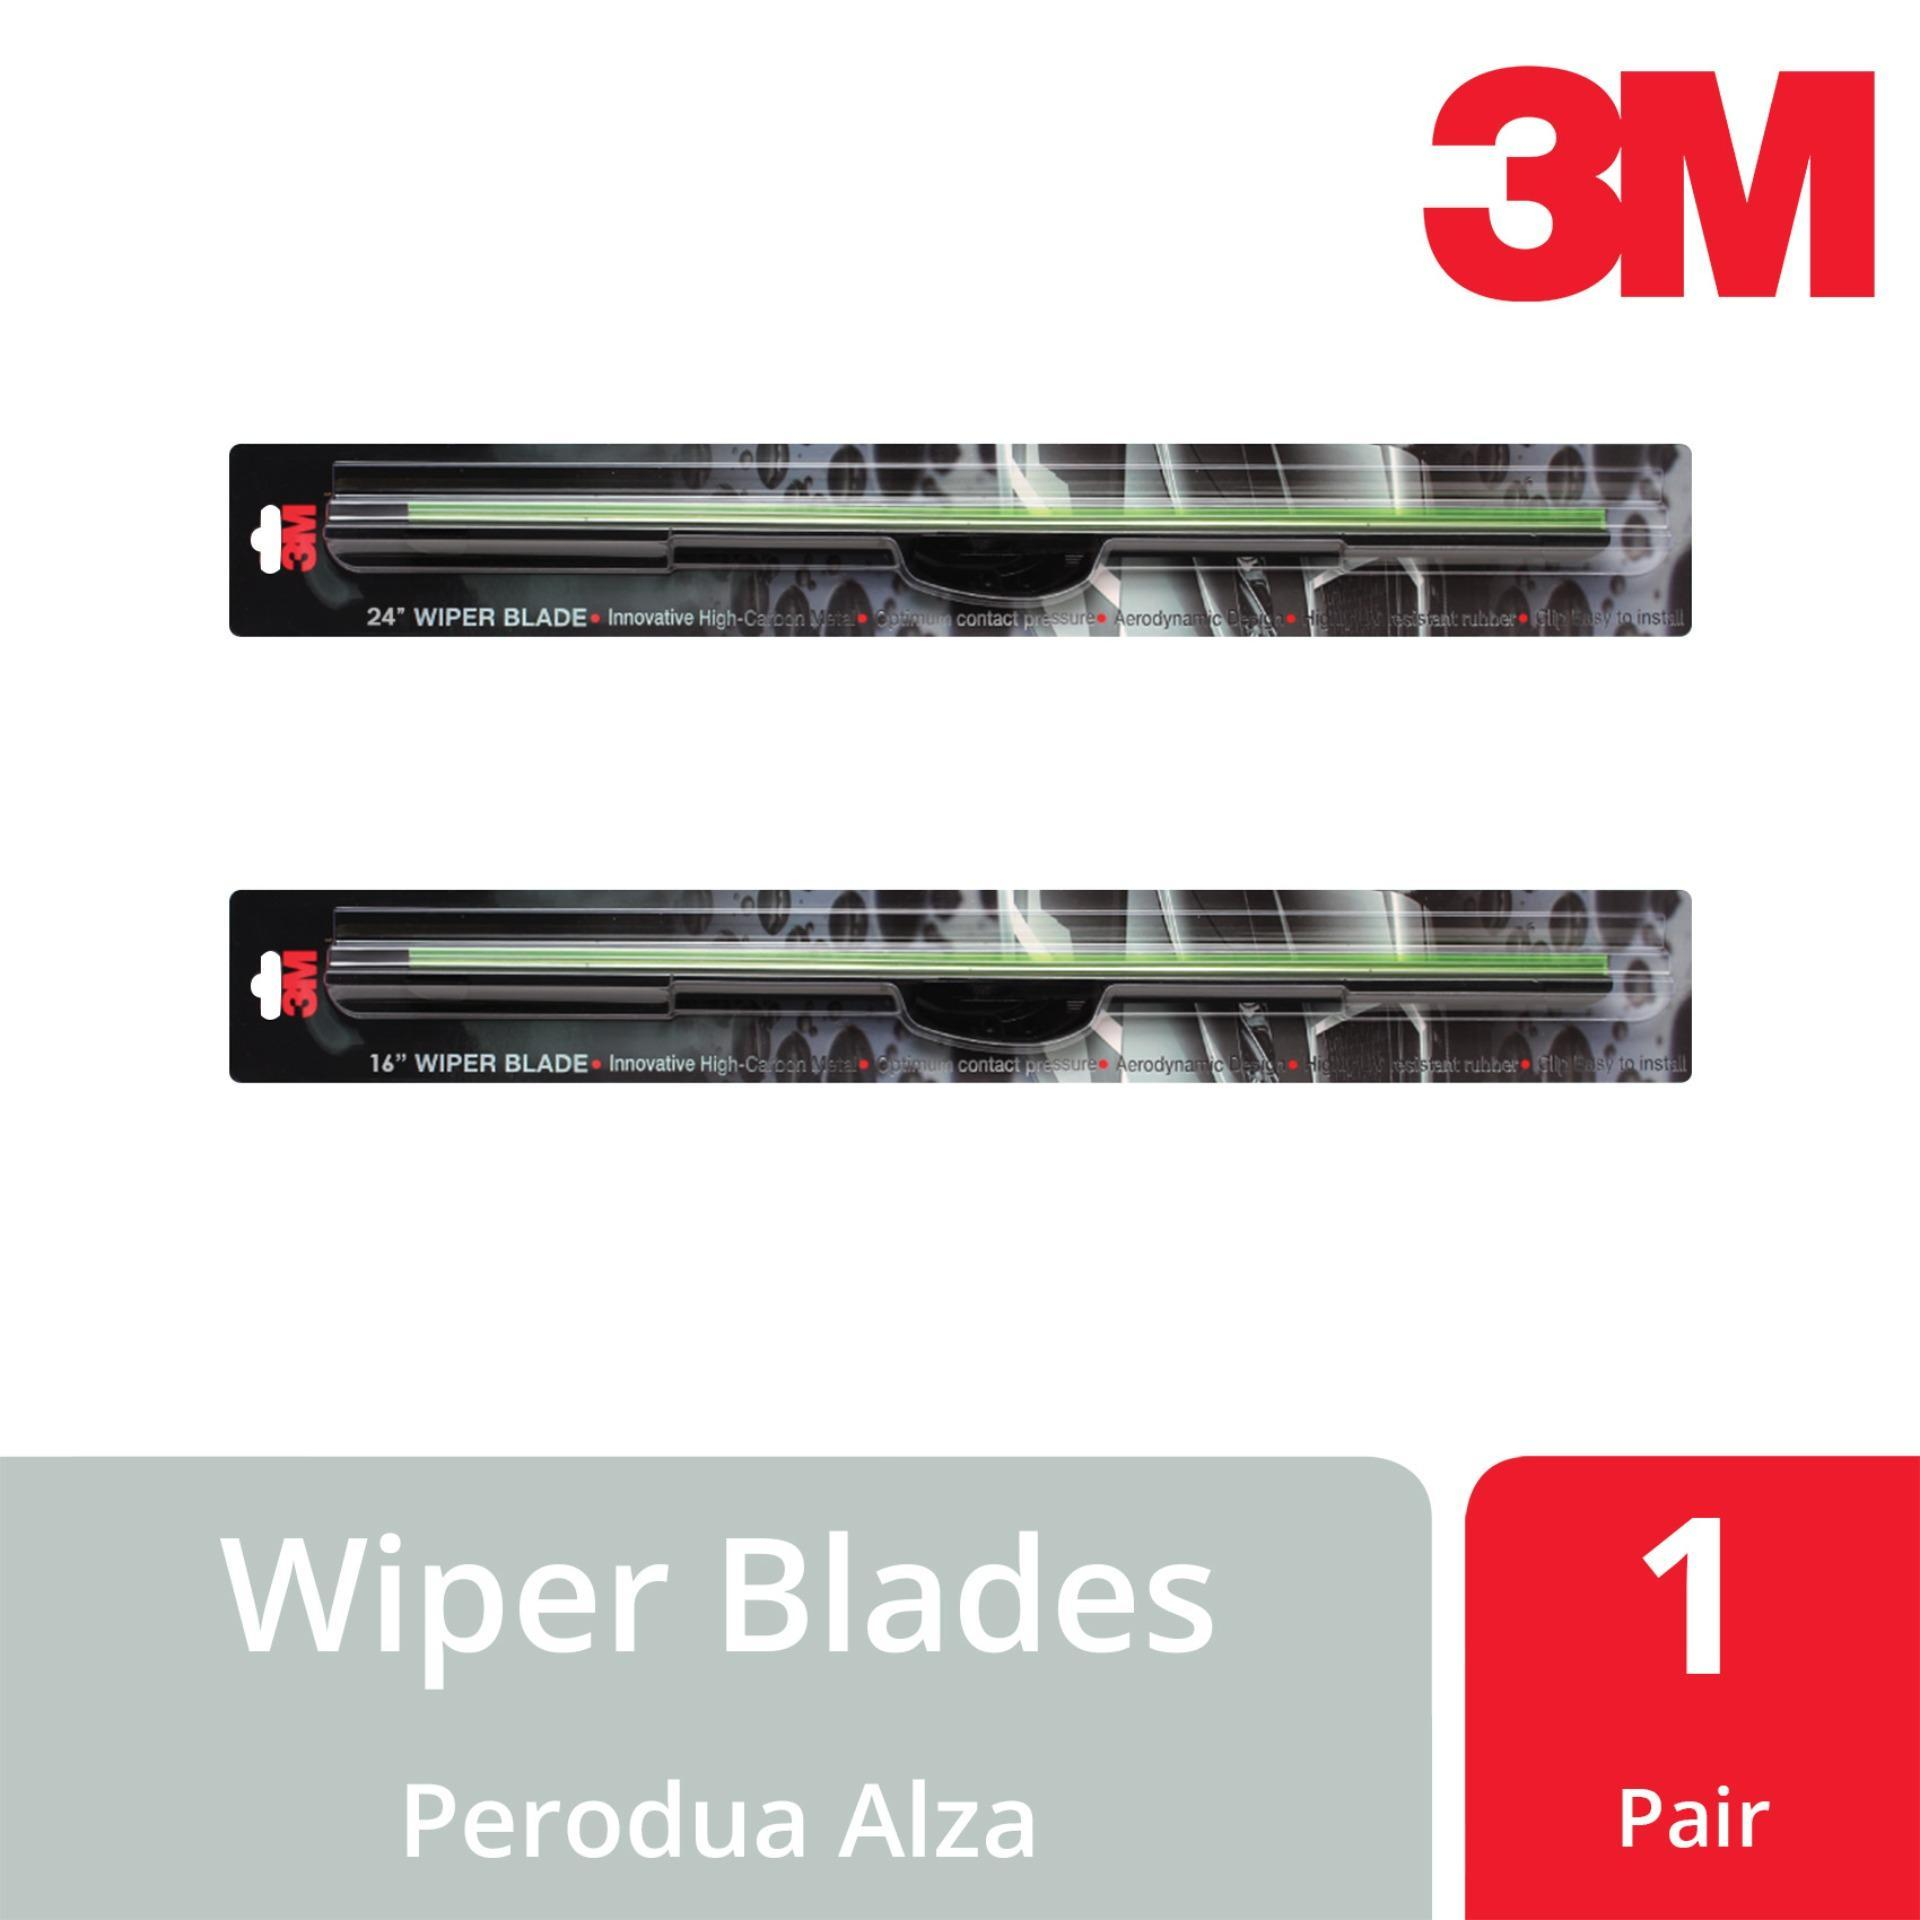 3m Frameless Wiper Blade 24 Per Pcs. By Bankable Marketing Shop.